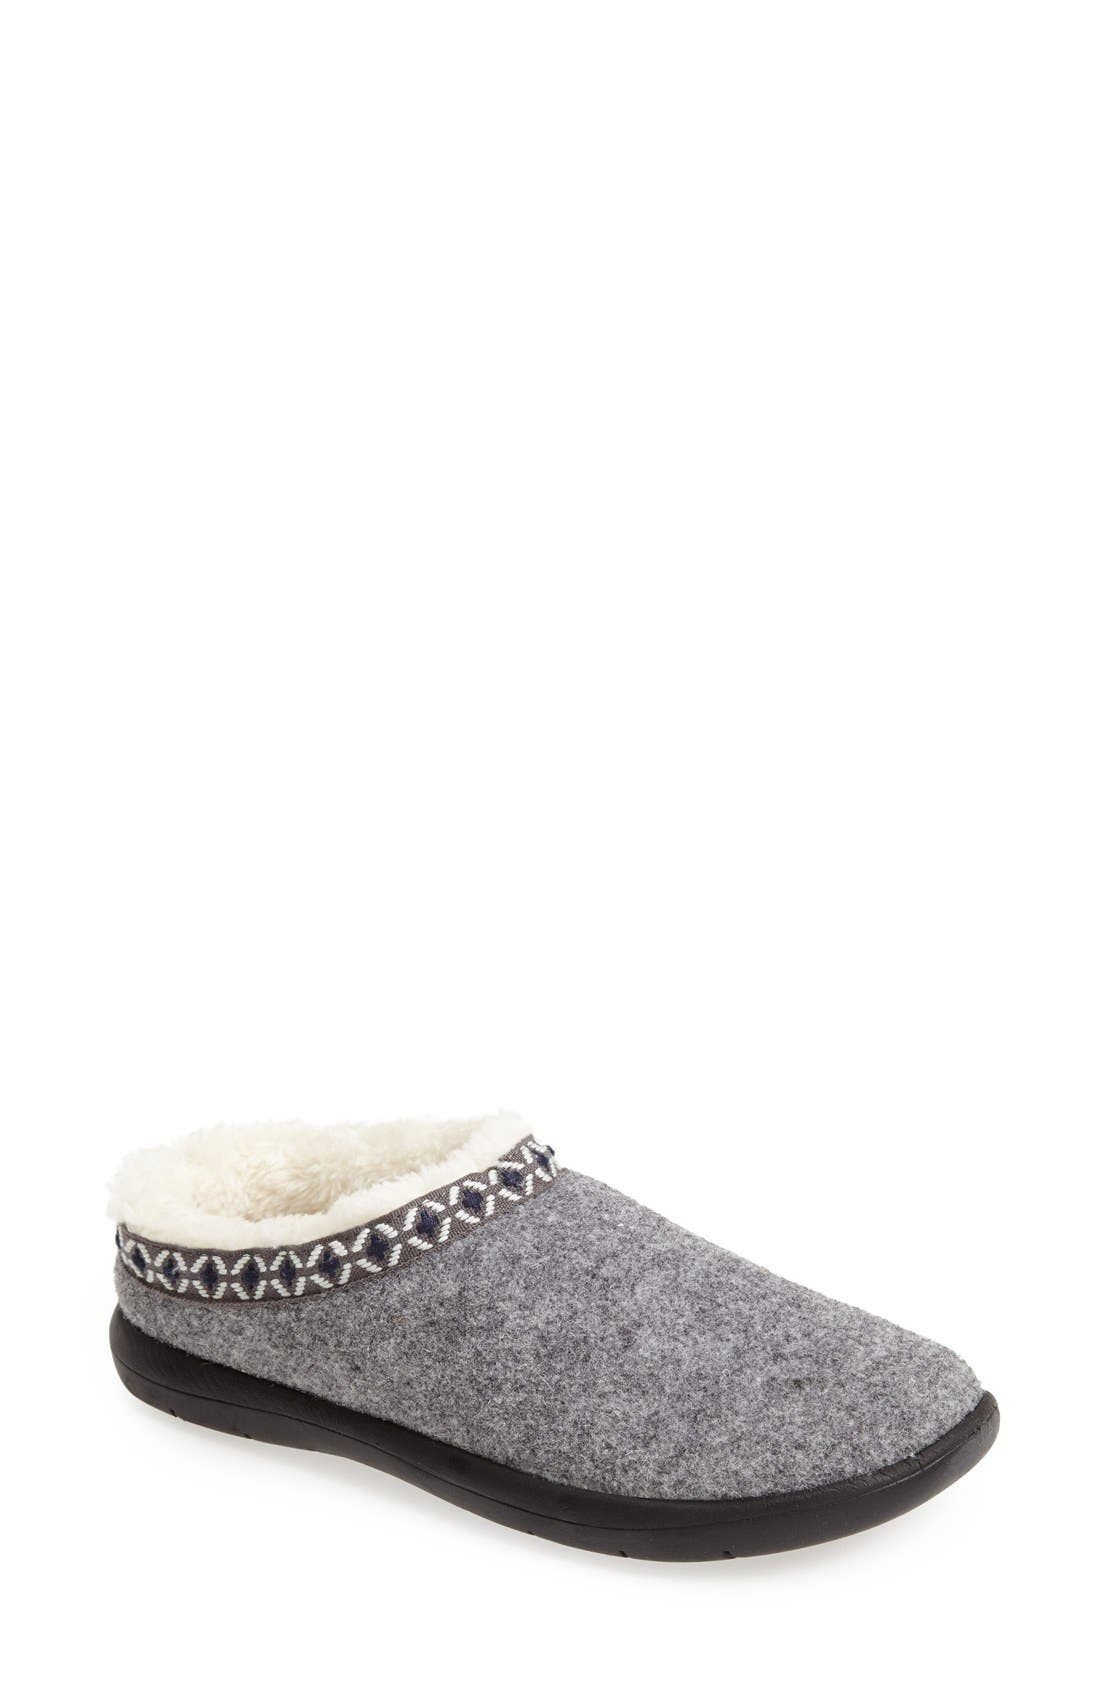 Main Image - Tempur-Pedic® 'Subartic' Slipper (Women)